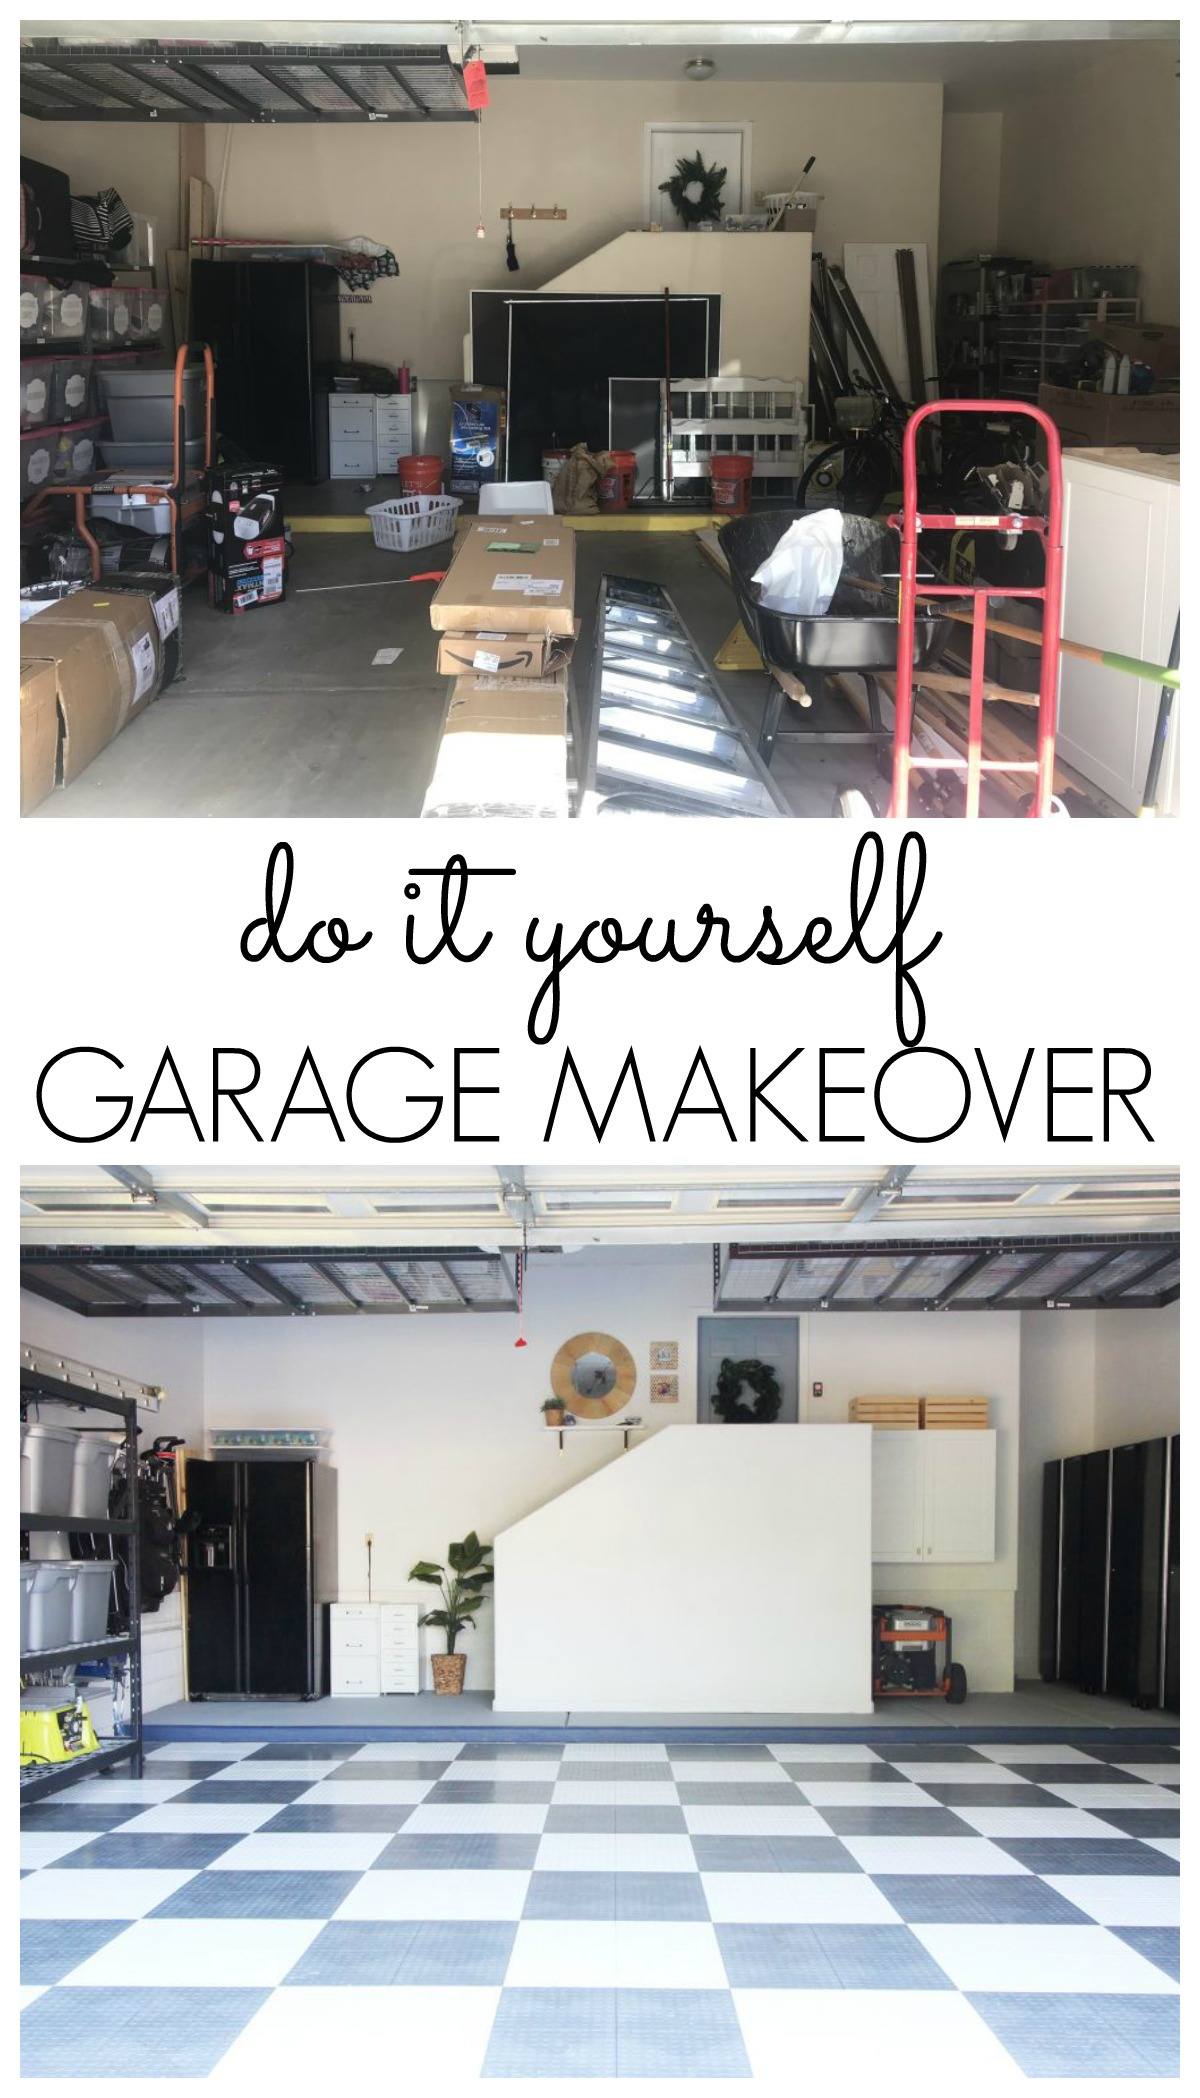 do it yourself garage makeover